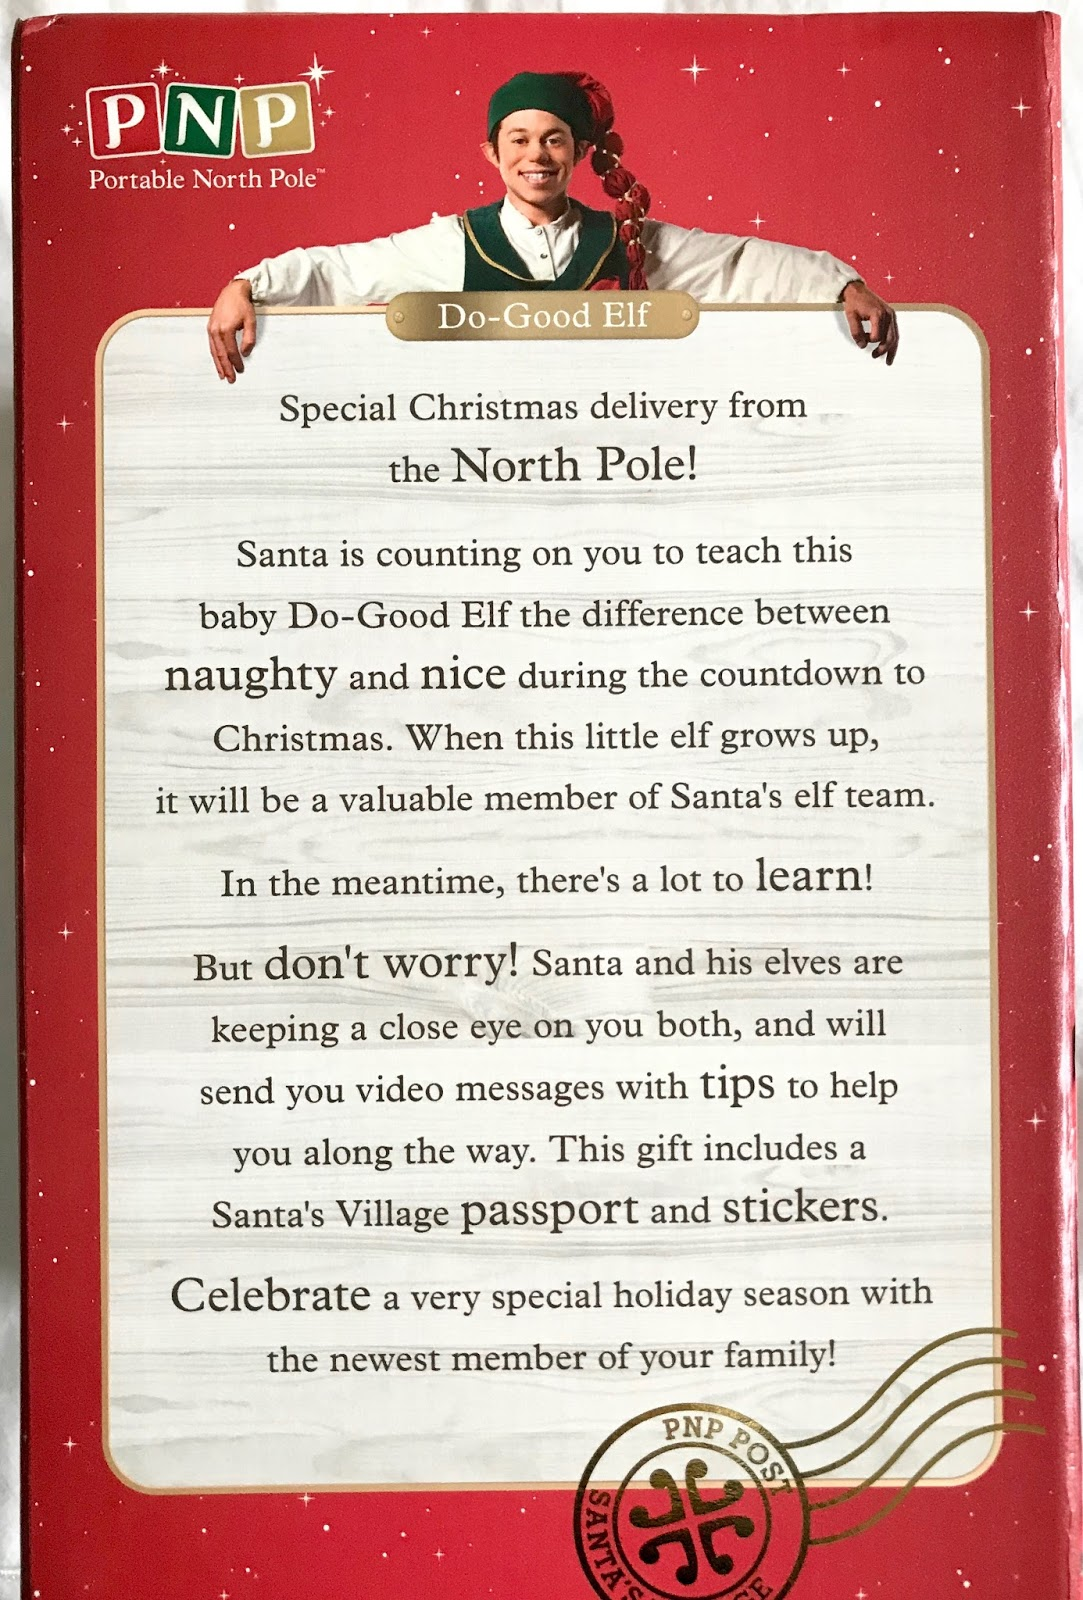 2e7c003d74a73 Our Do-Good Elf also comes with his very own passport from Santa s Village  and special Elf stickers which is a really nice touch